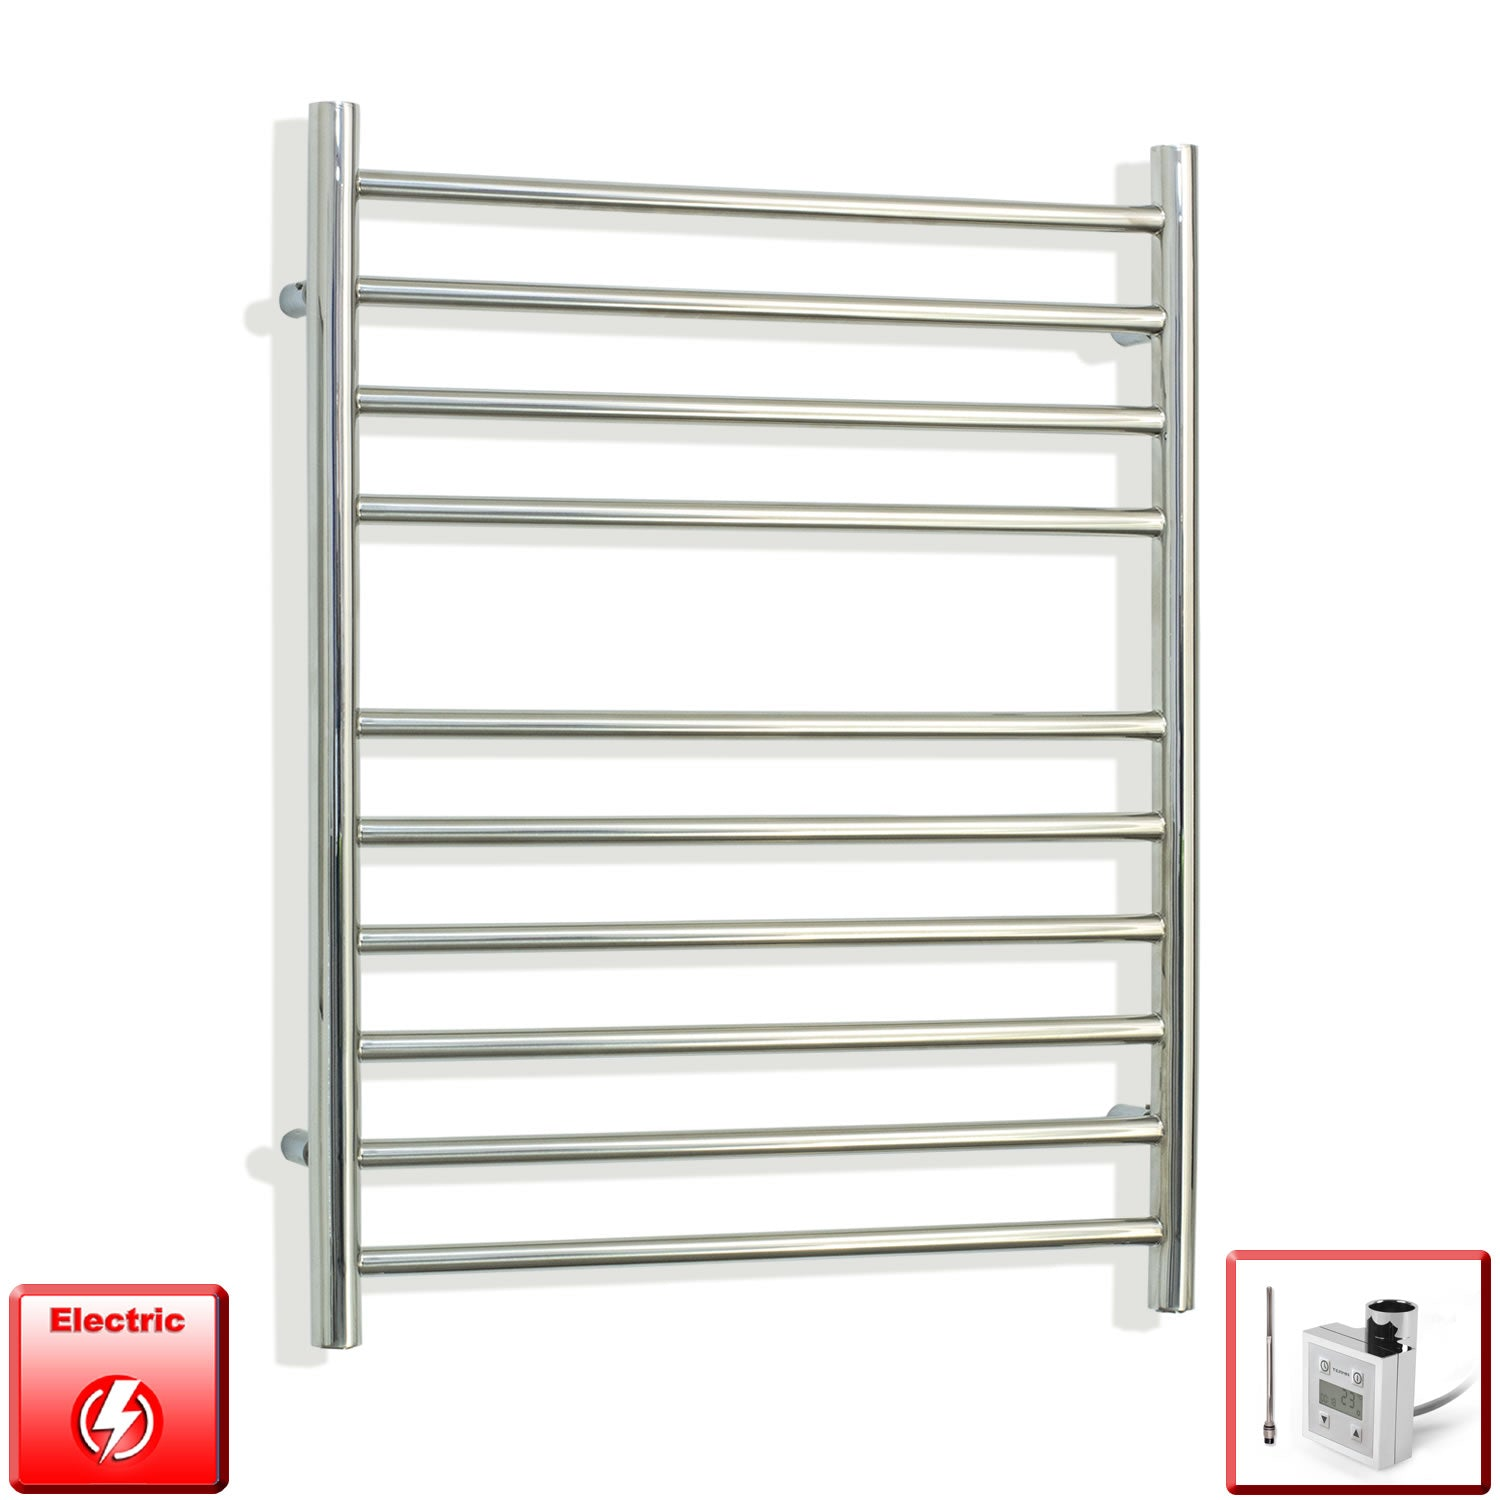 750 mm High 500 mm Wide Pre-Filled Electric Stainless Steel Heated Towel Rail Radiator ktx3 programmable thermostatic heating element